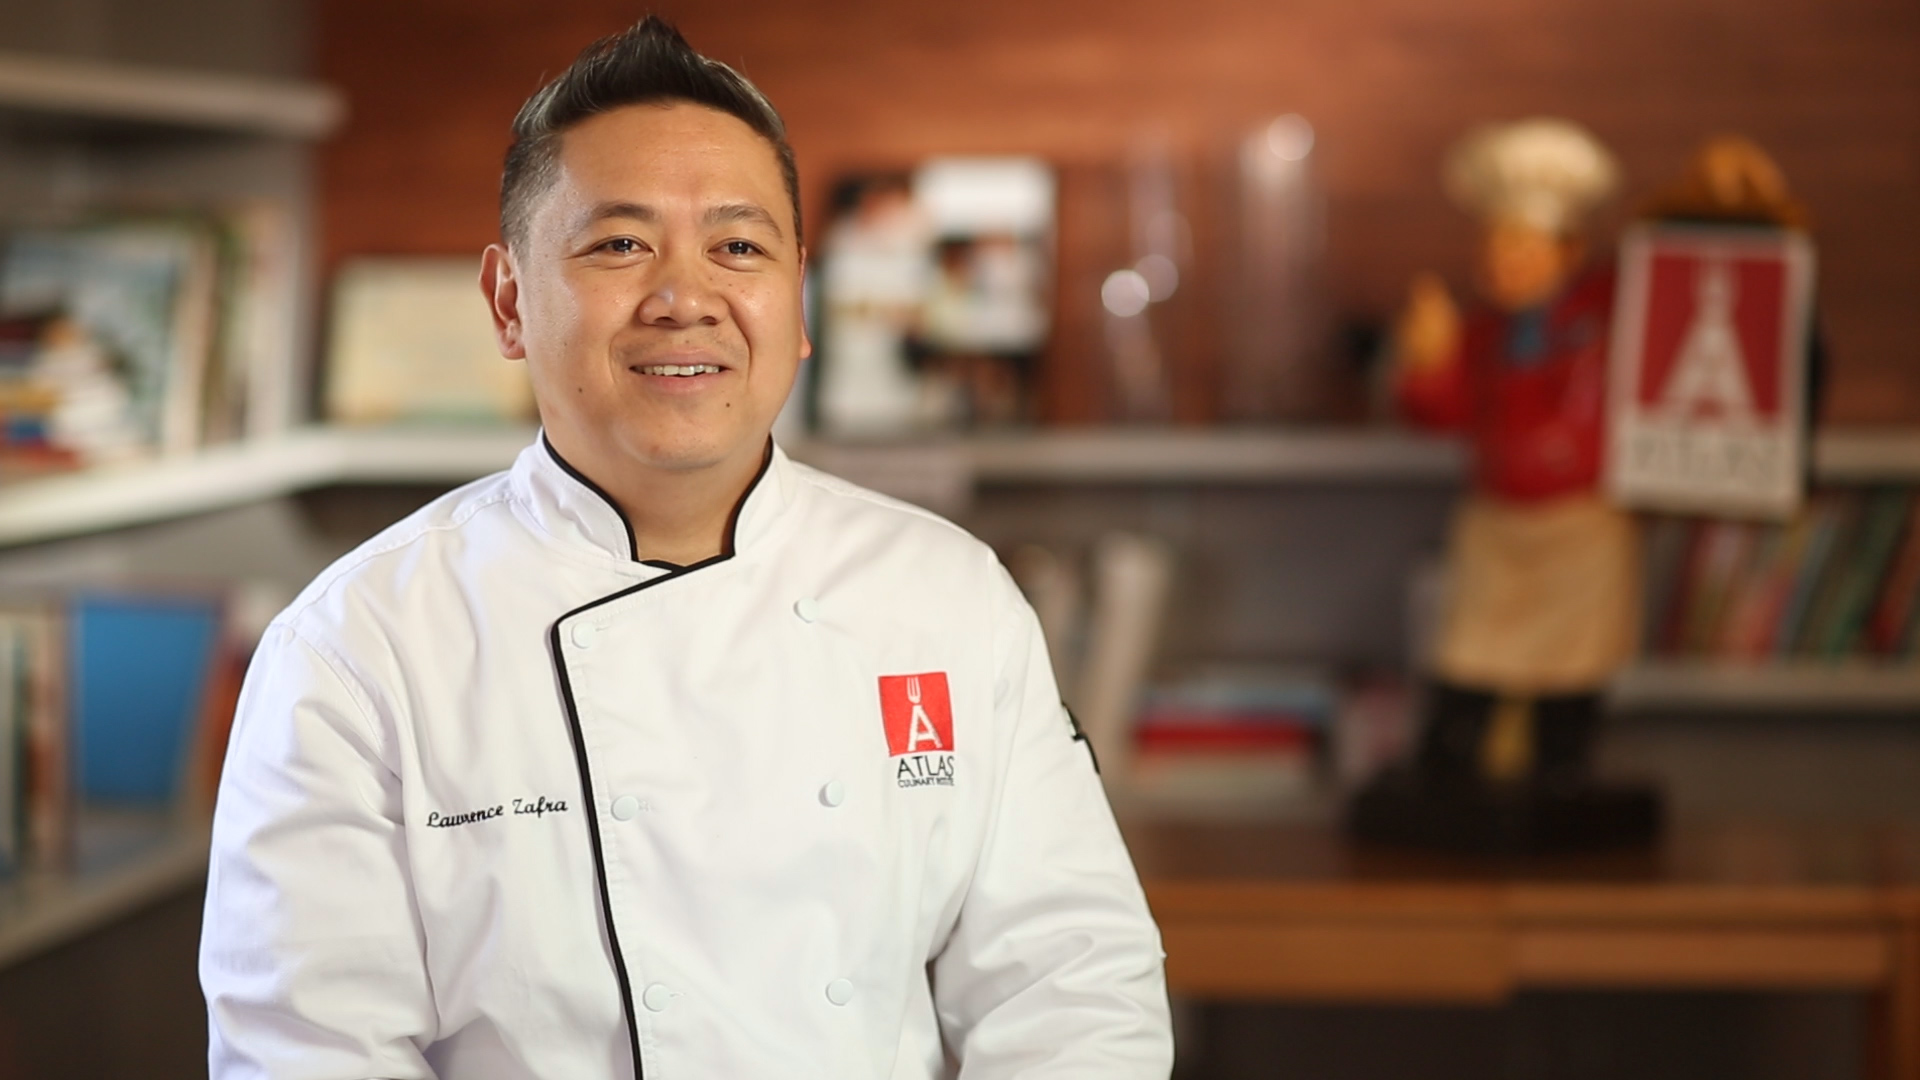 ATLAS Chef Lawrence Zafra